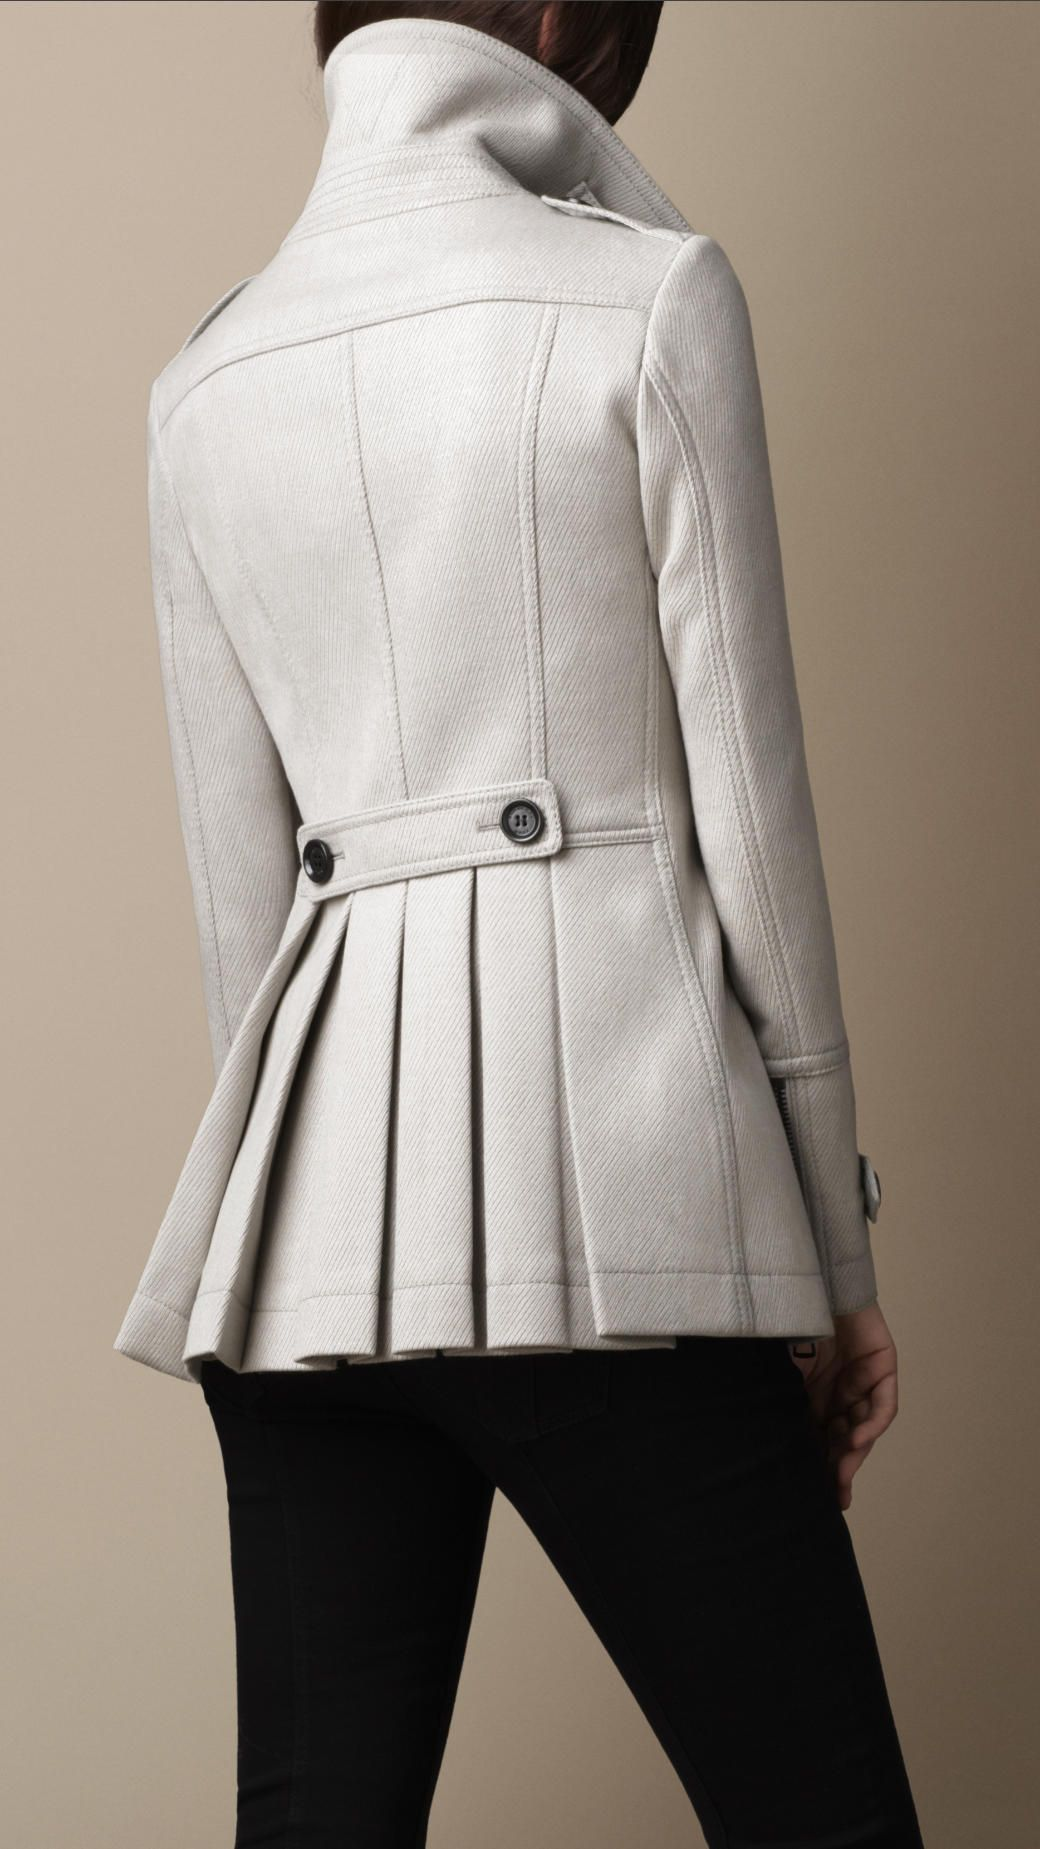 Burberry wool pea coat | Jackets et al | Pinterest | Wool pea coat ...